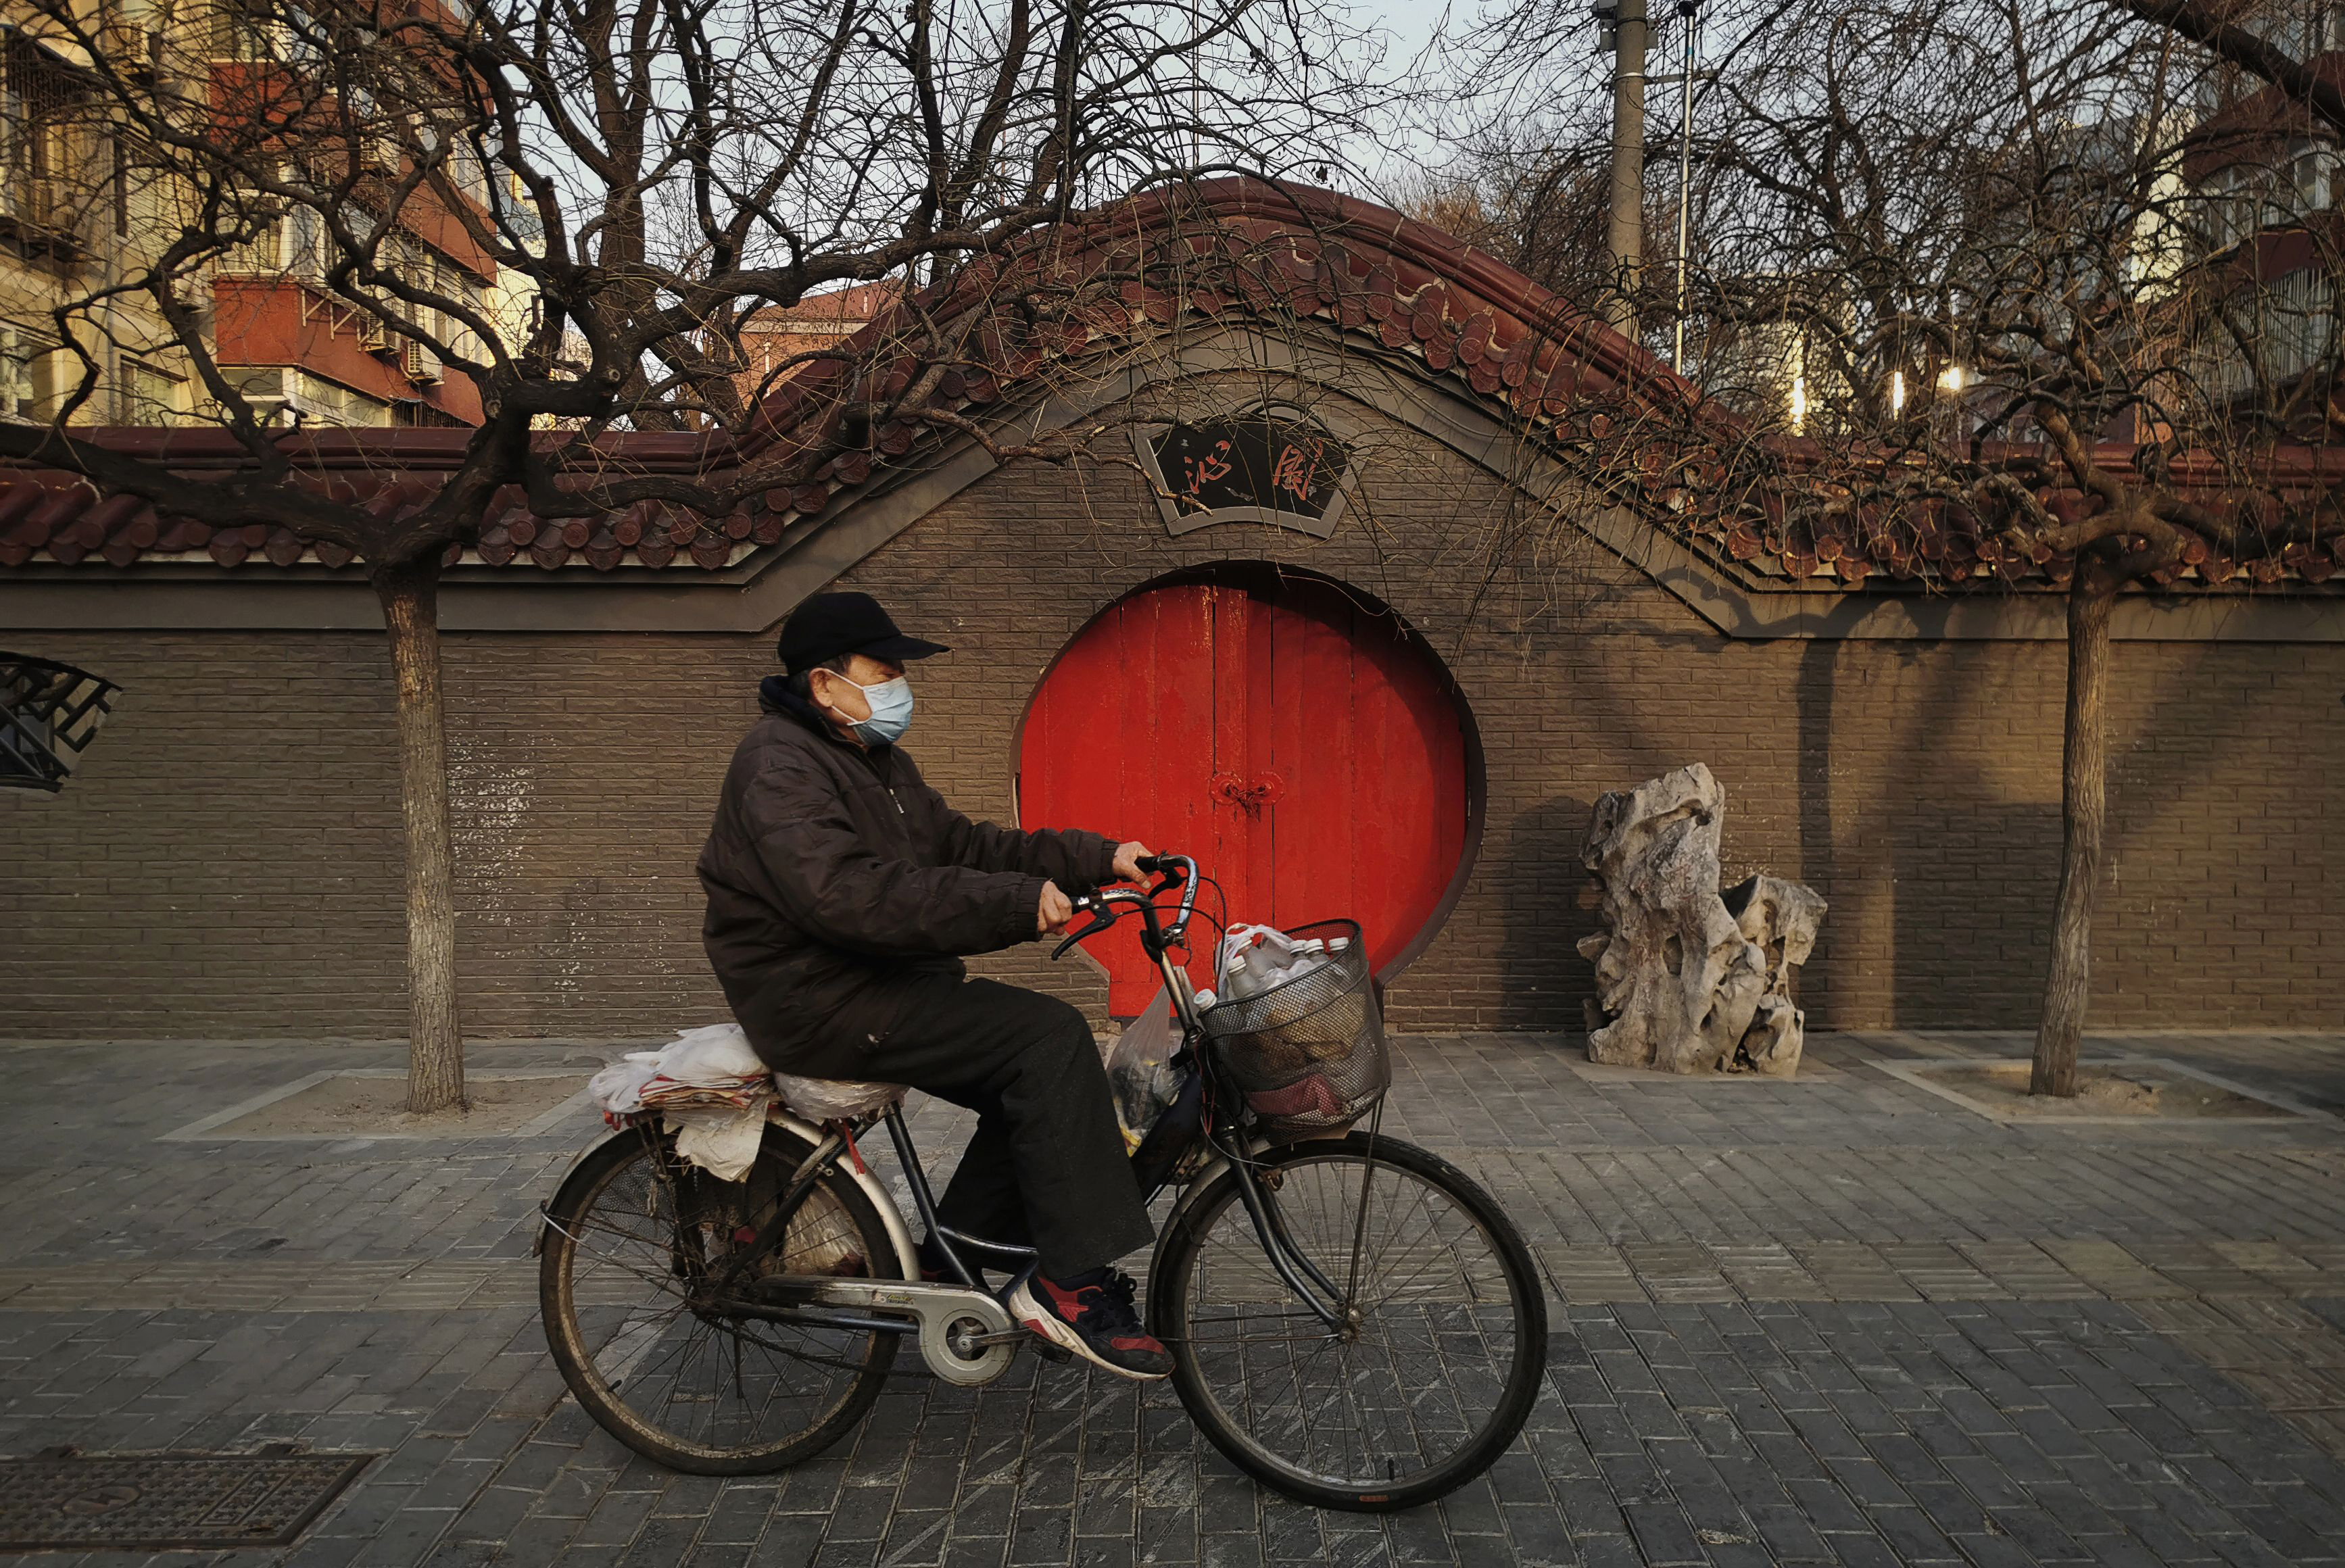 A Chinese man wears a protective mask as he rides his bike on February 23, 2020 in Beijing, China.